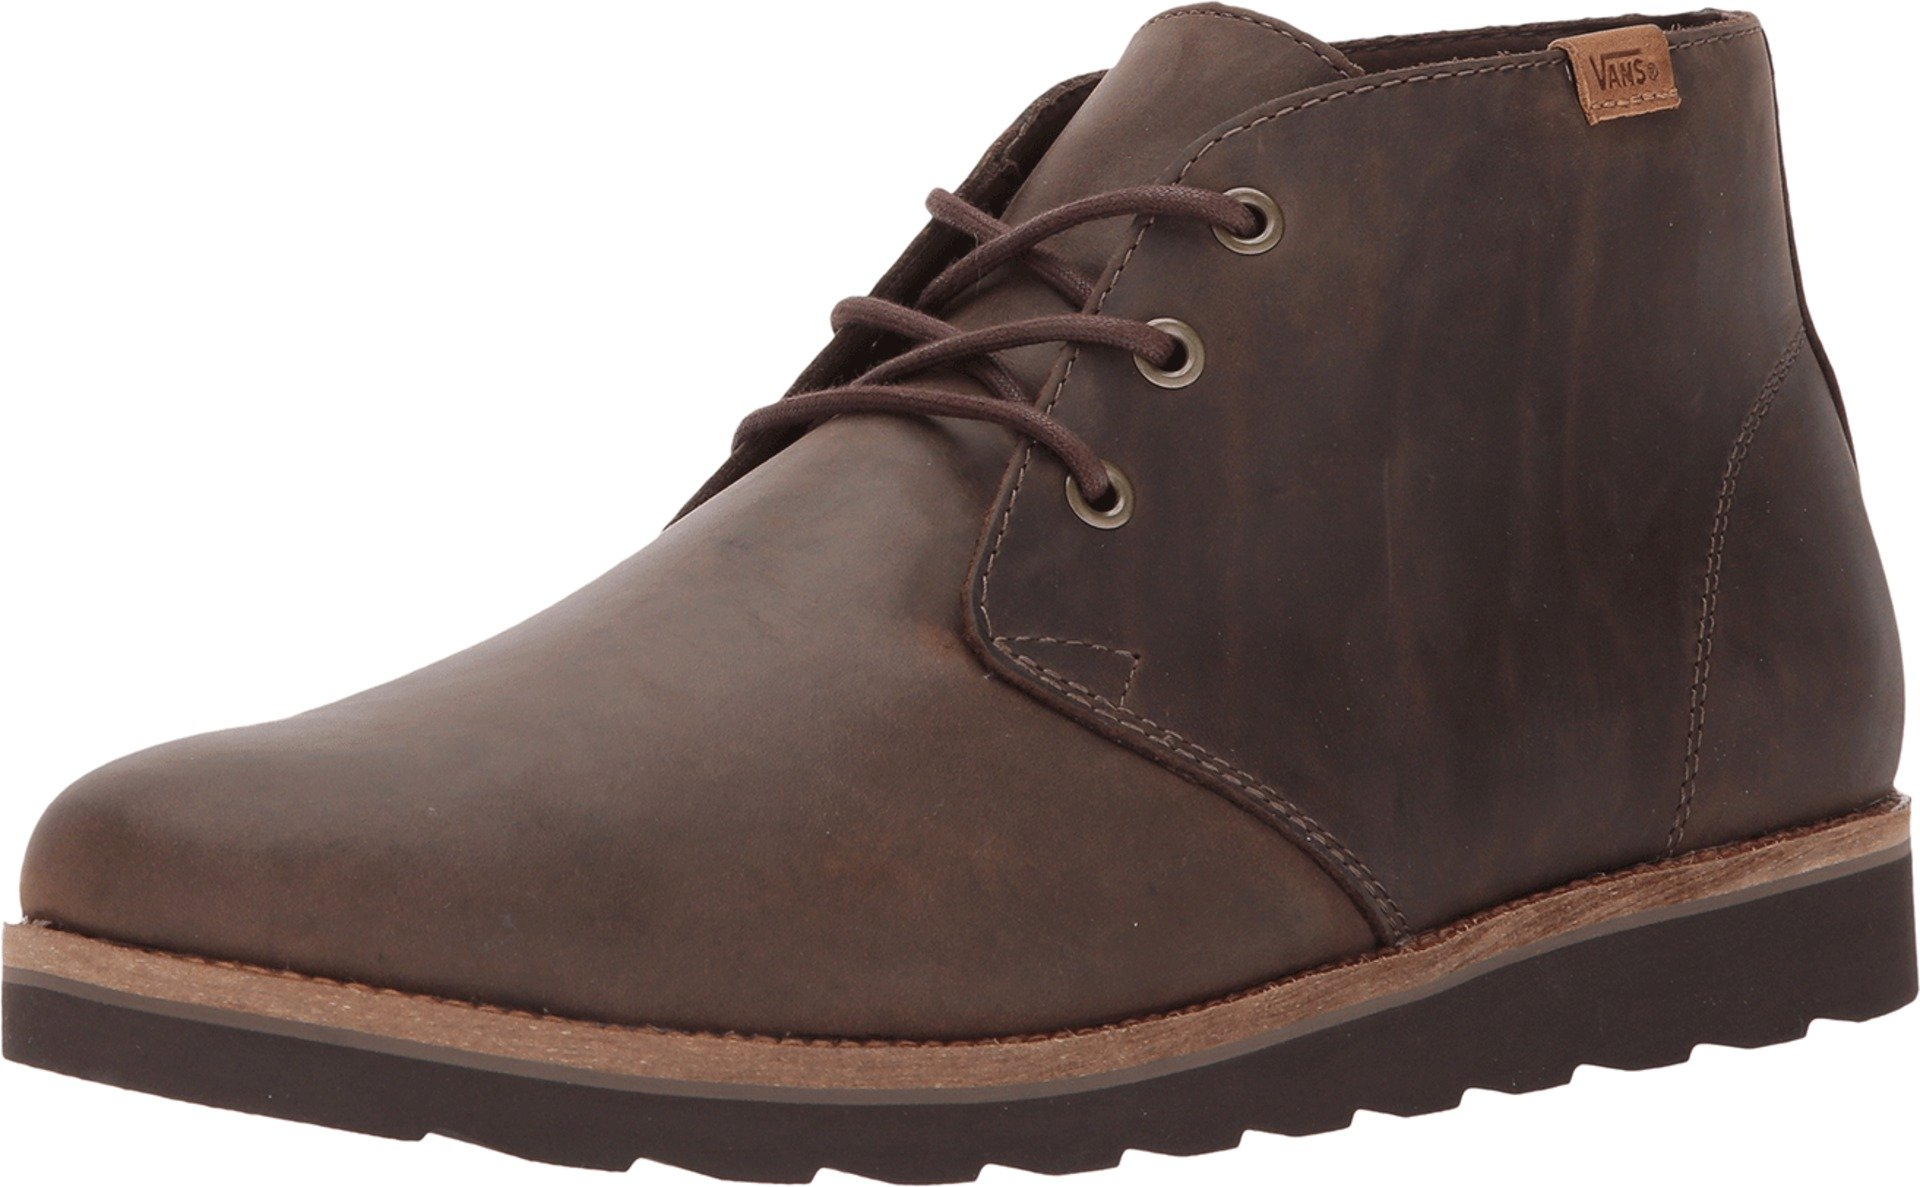 Vans Desert Chukka Boot, Leather Carafe (8 D(M) US)